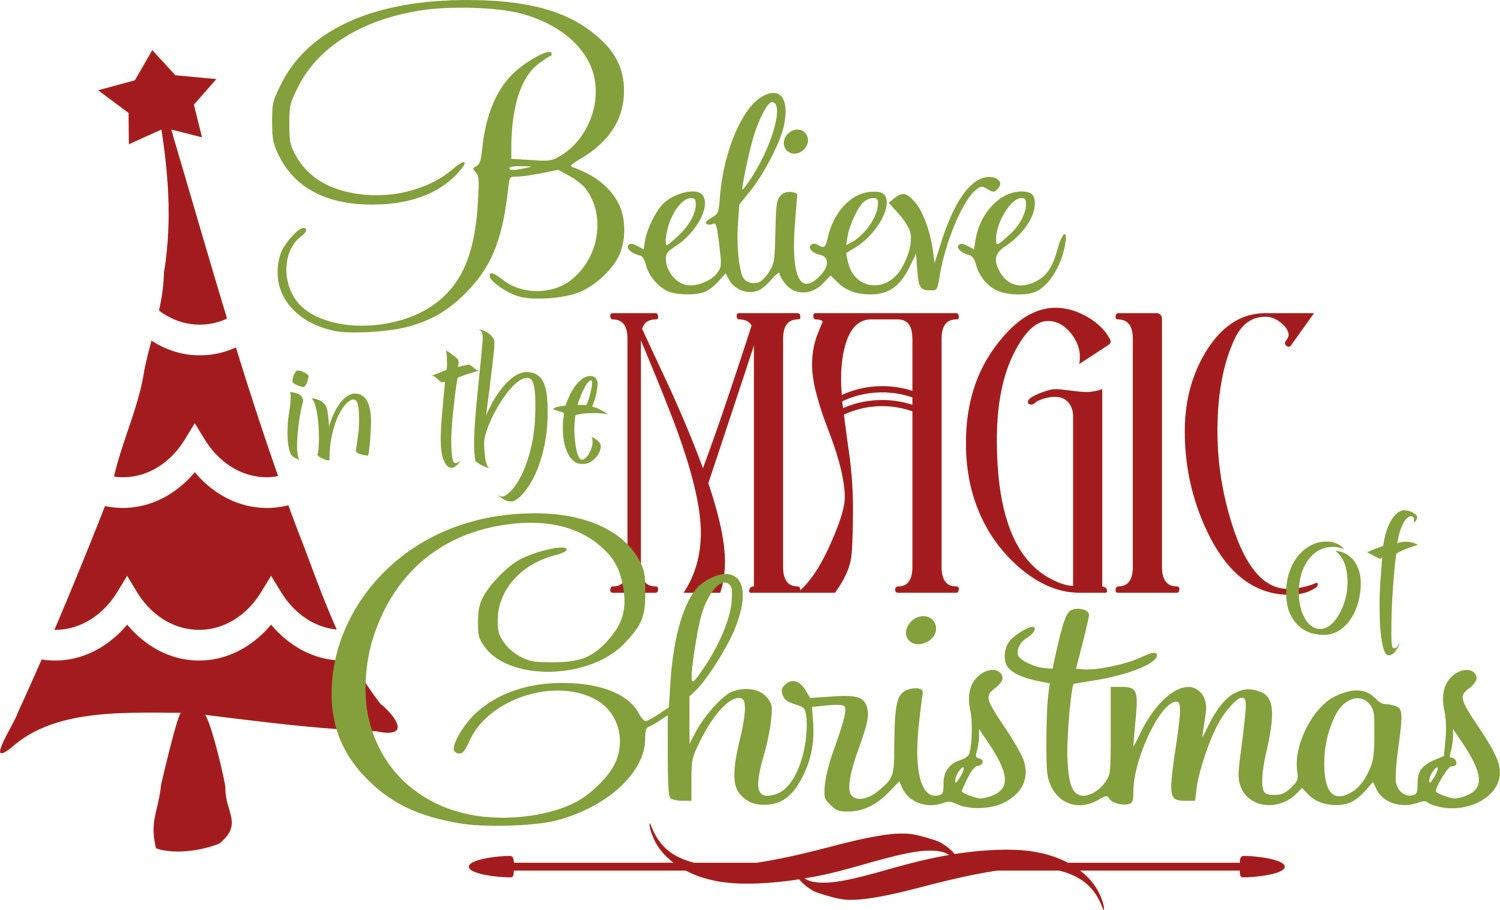 Merry Christmas Quote Wall Art Decal: Items Similar To Vinyl Wall Decal